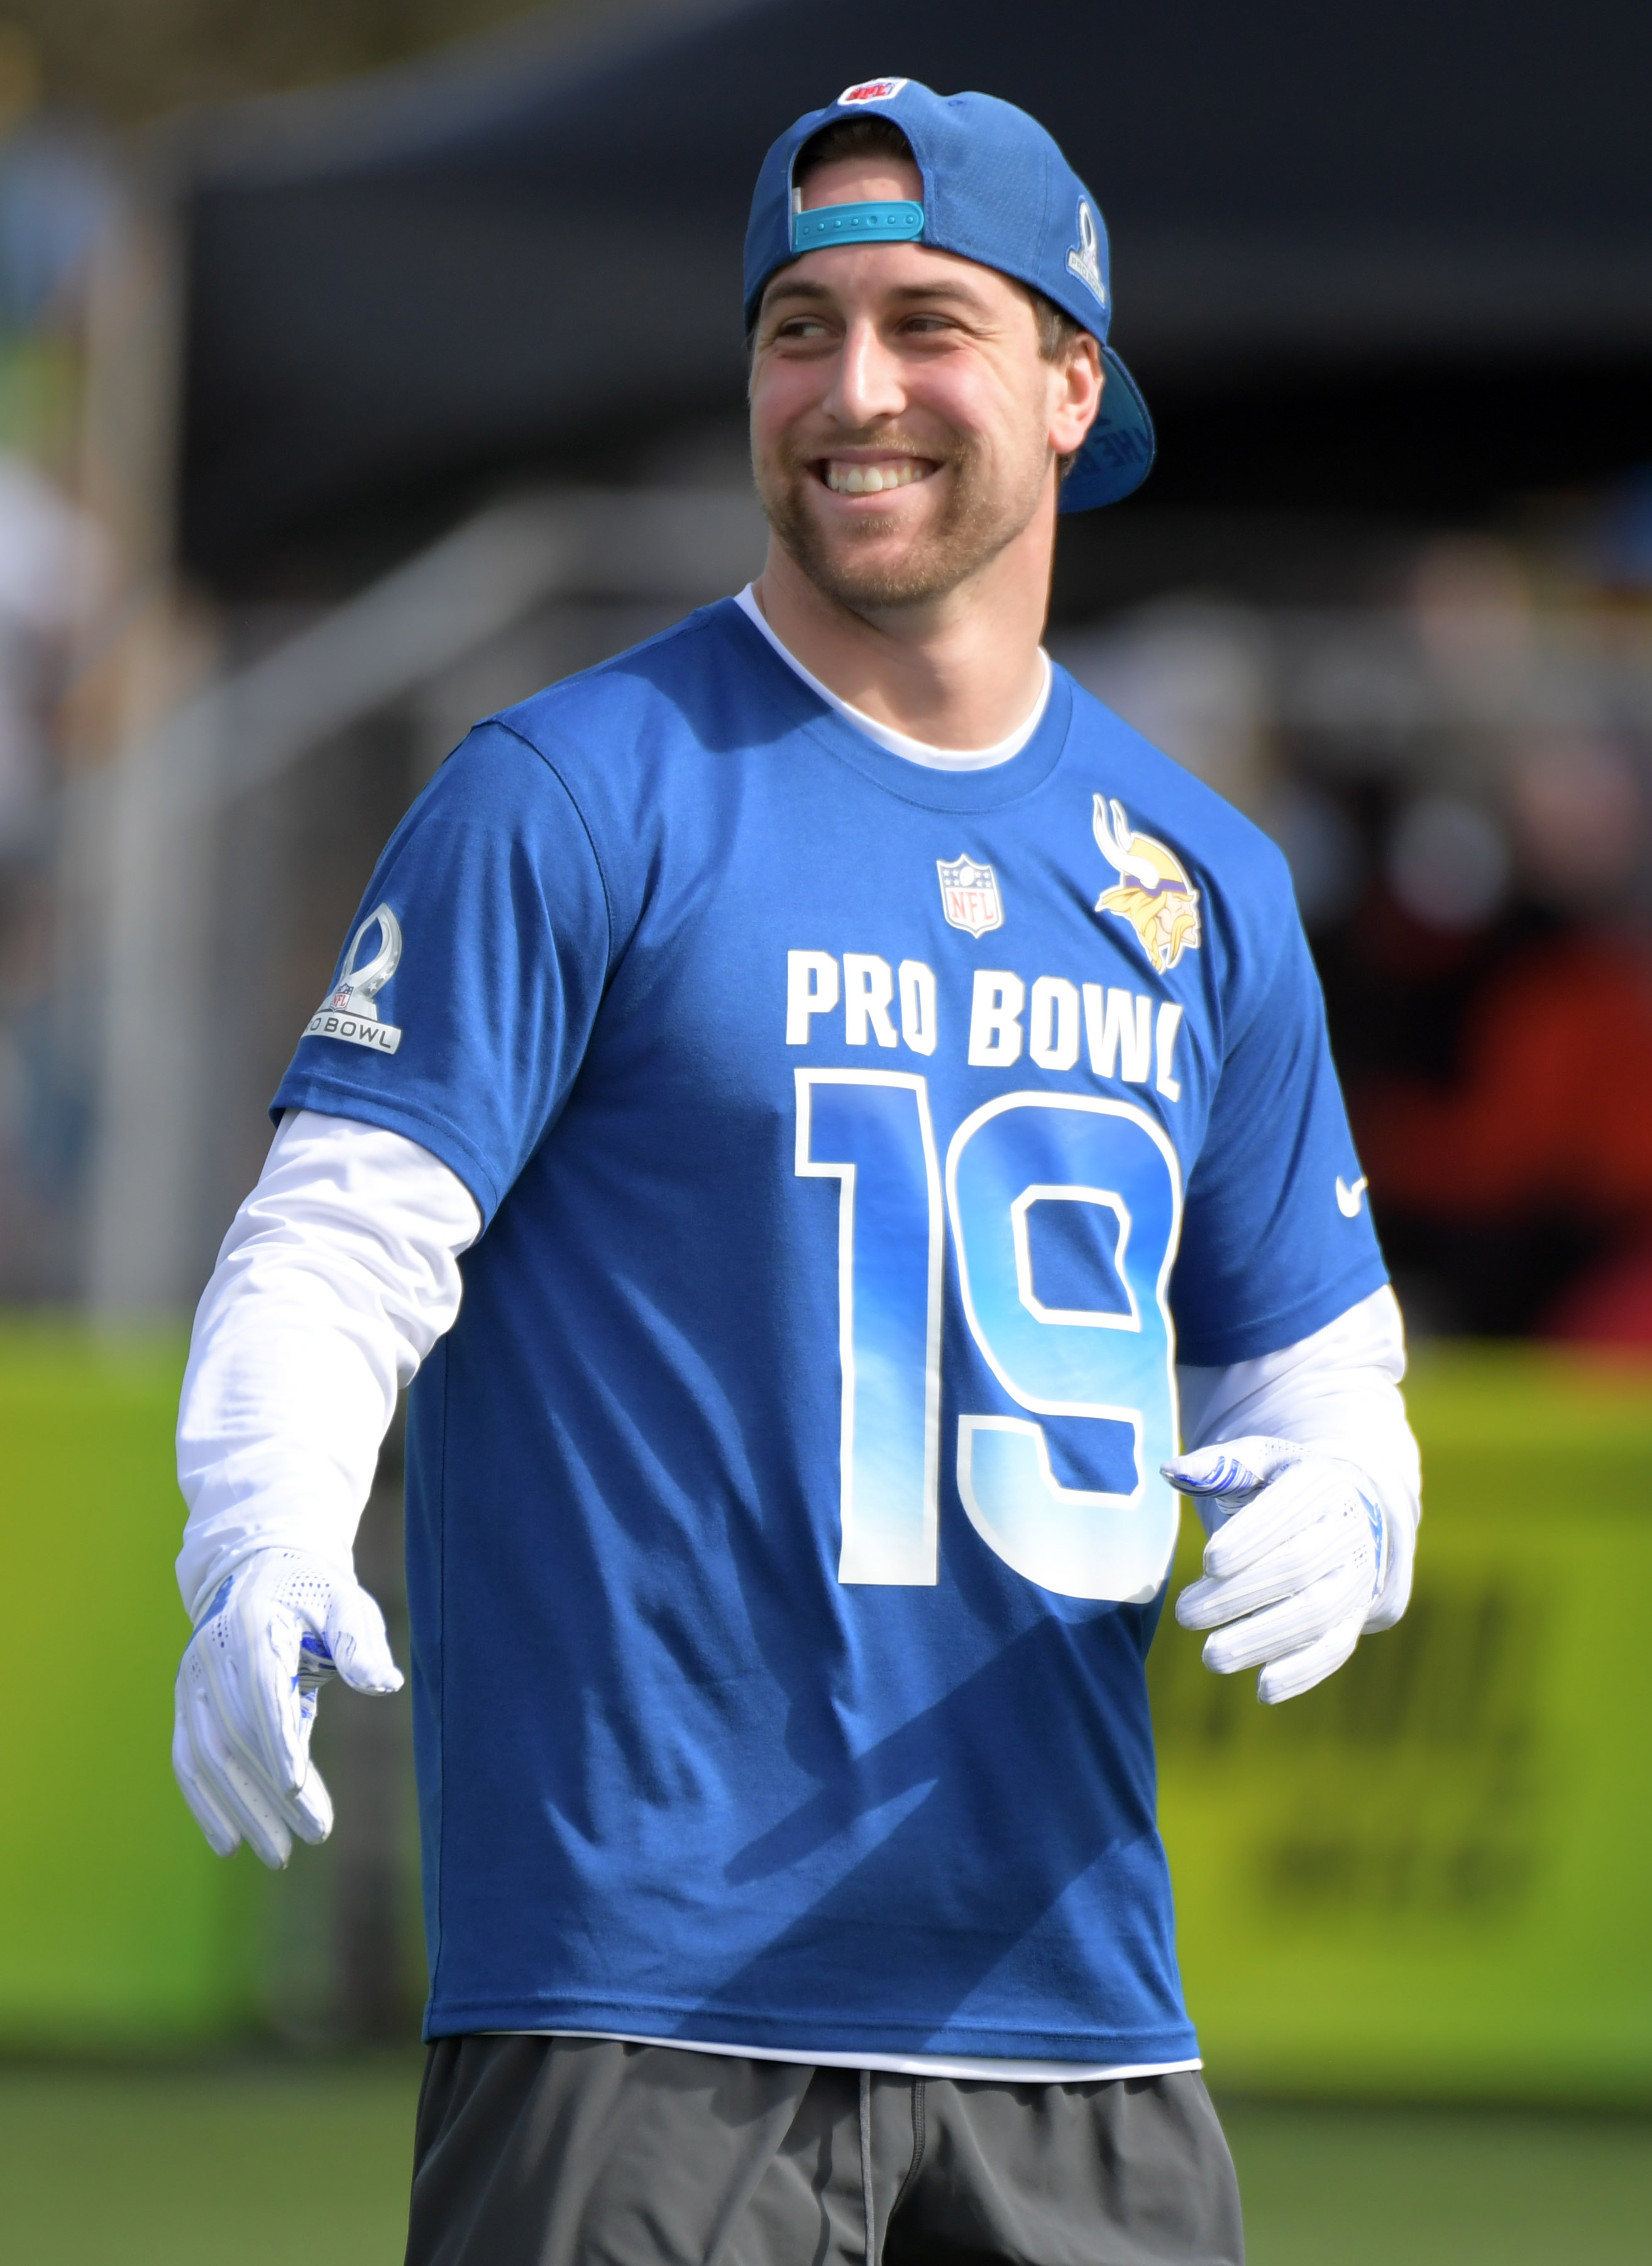 These Eight Nfl Pro Bowl Players Would Support A Gay